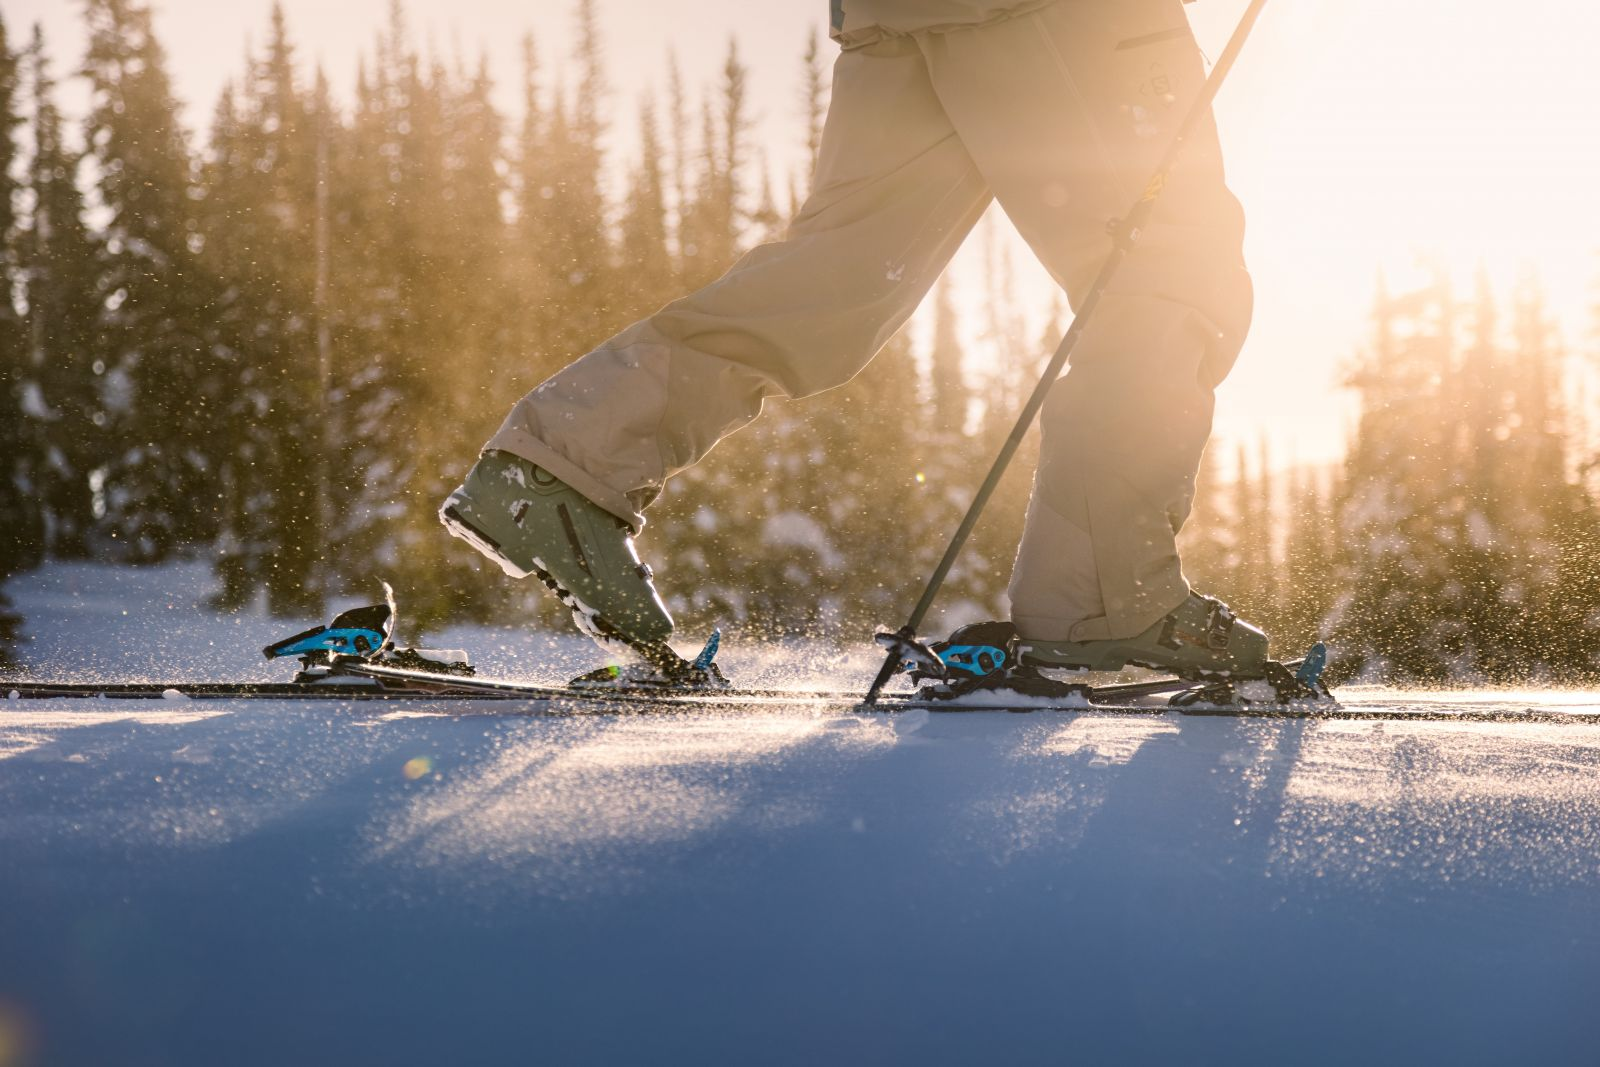 Salomon Shift and Shift Pro Boot in Action